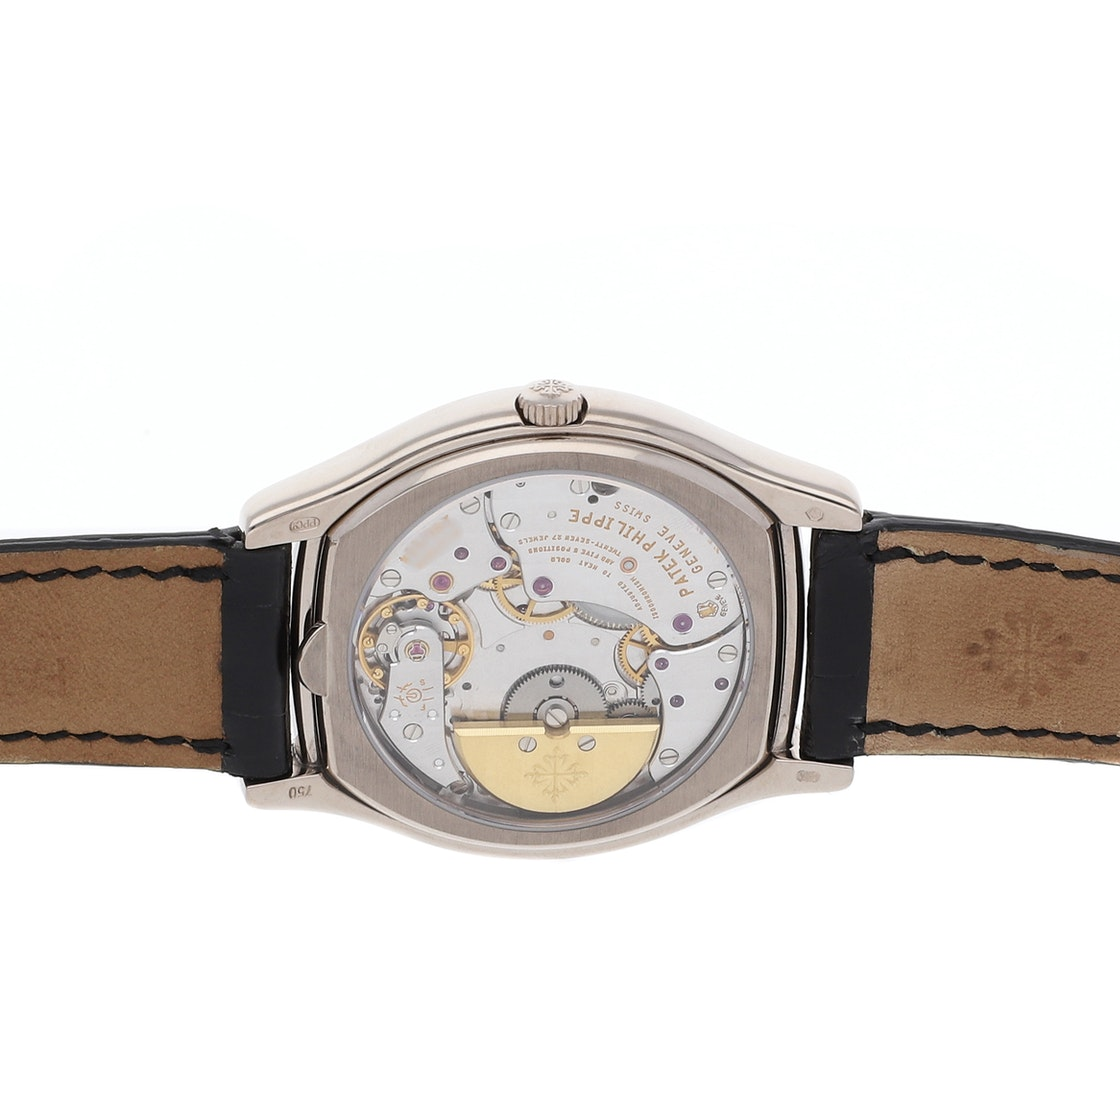 Patek Philippe Grand Complications Perpetual Calendar 5040G-016